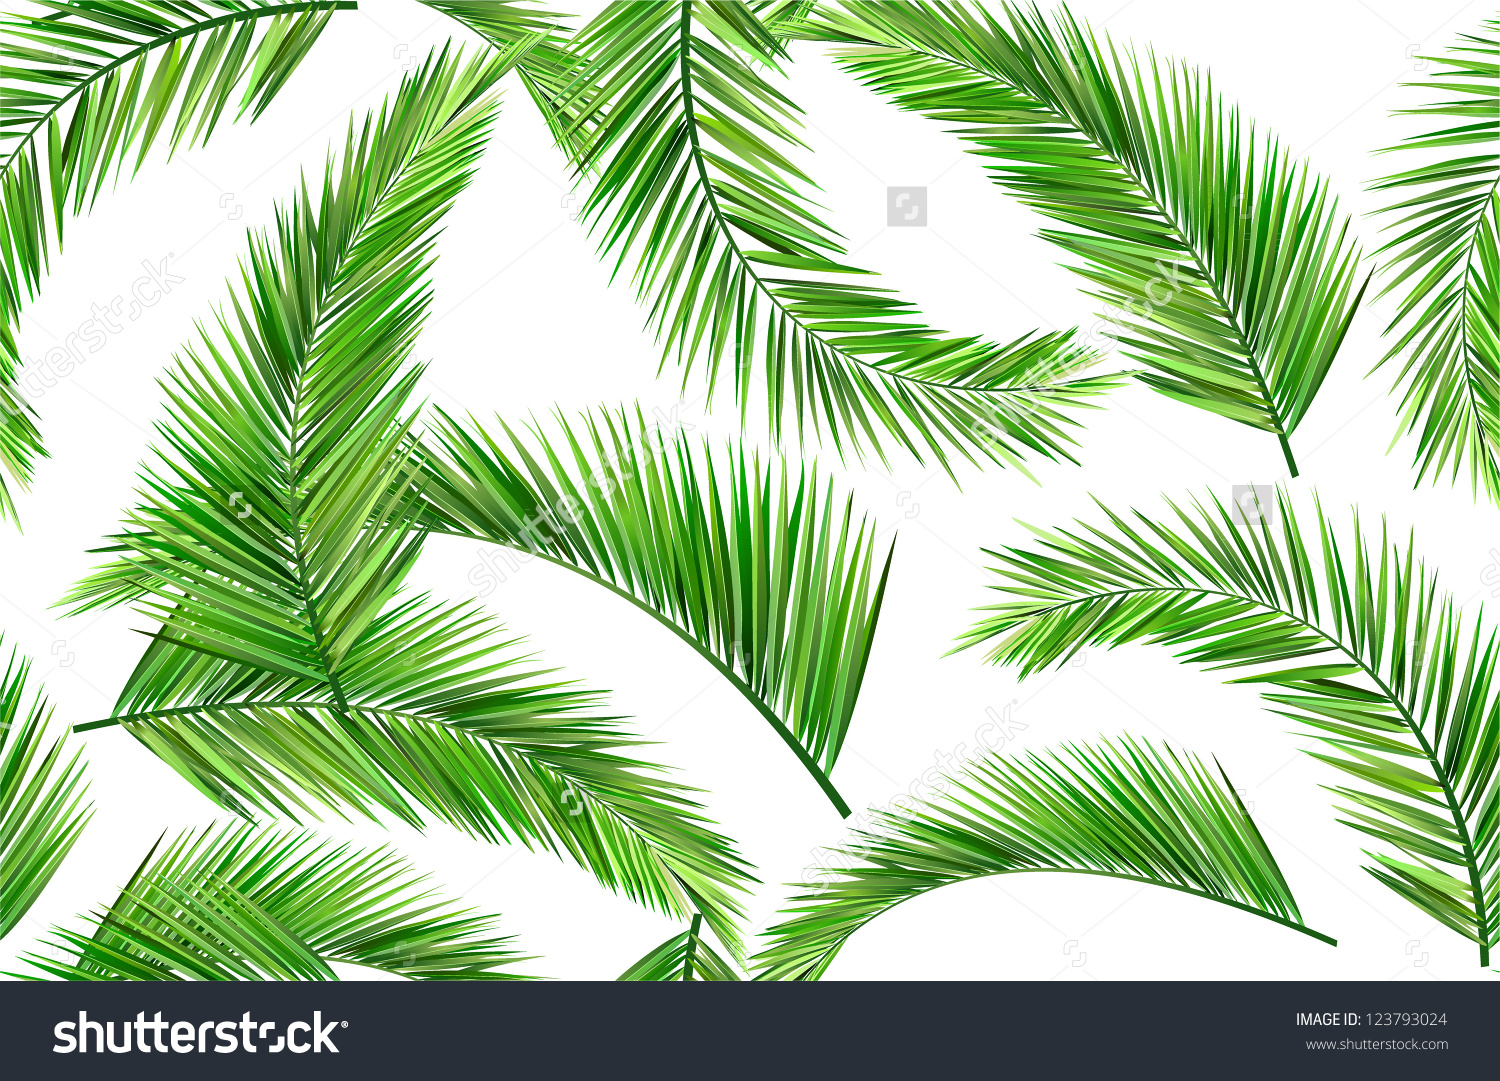 Seamless Repeat Coconut Leaves Stock Vector 123793024.